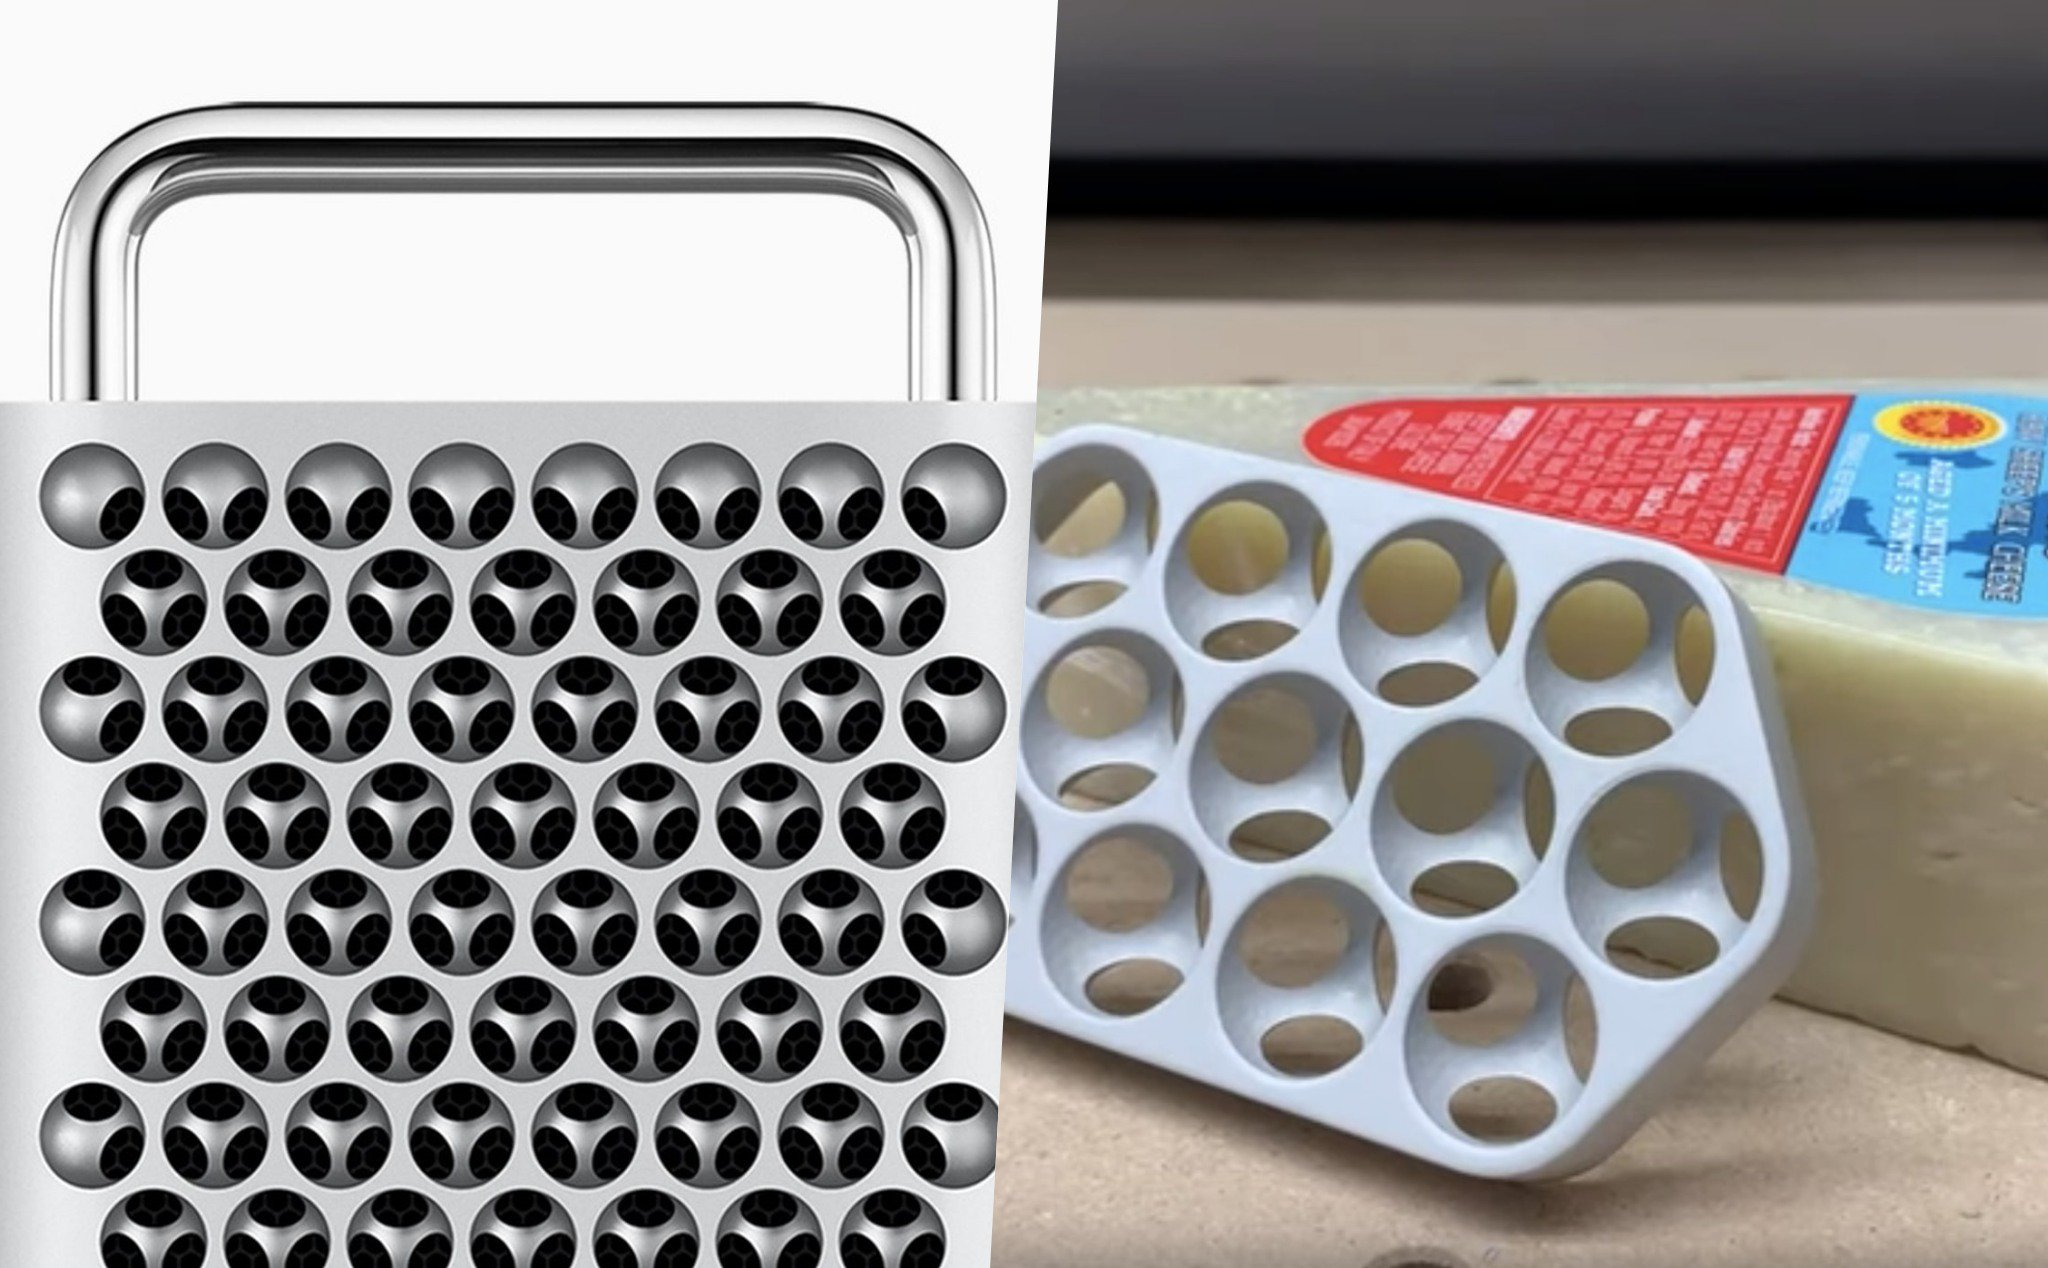 The new Mac Pro case is not ... good cheese as everyone thinks